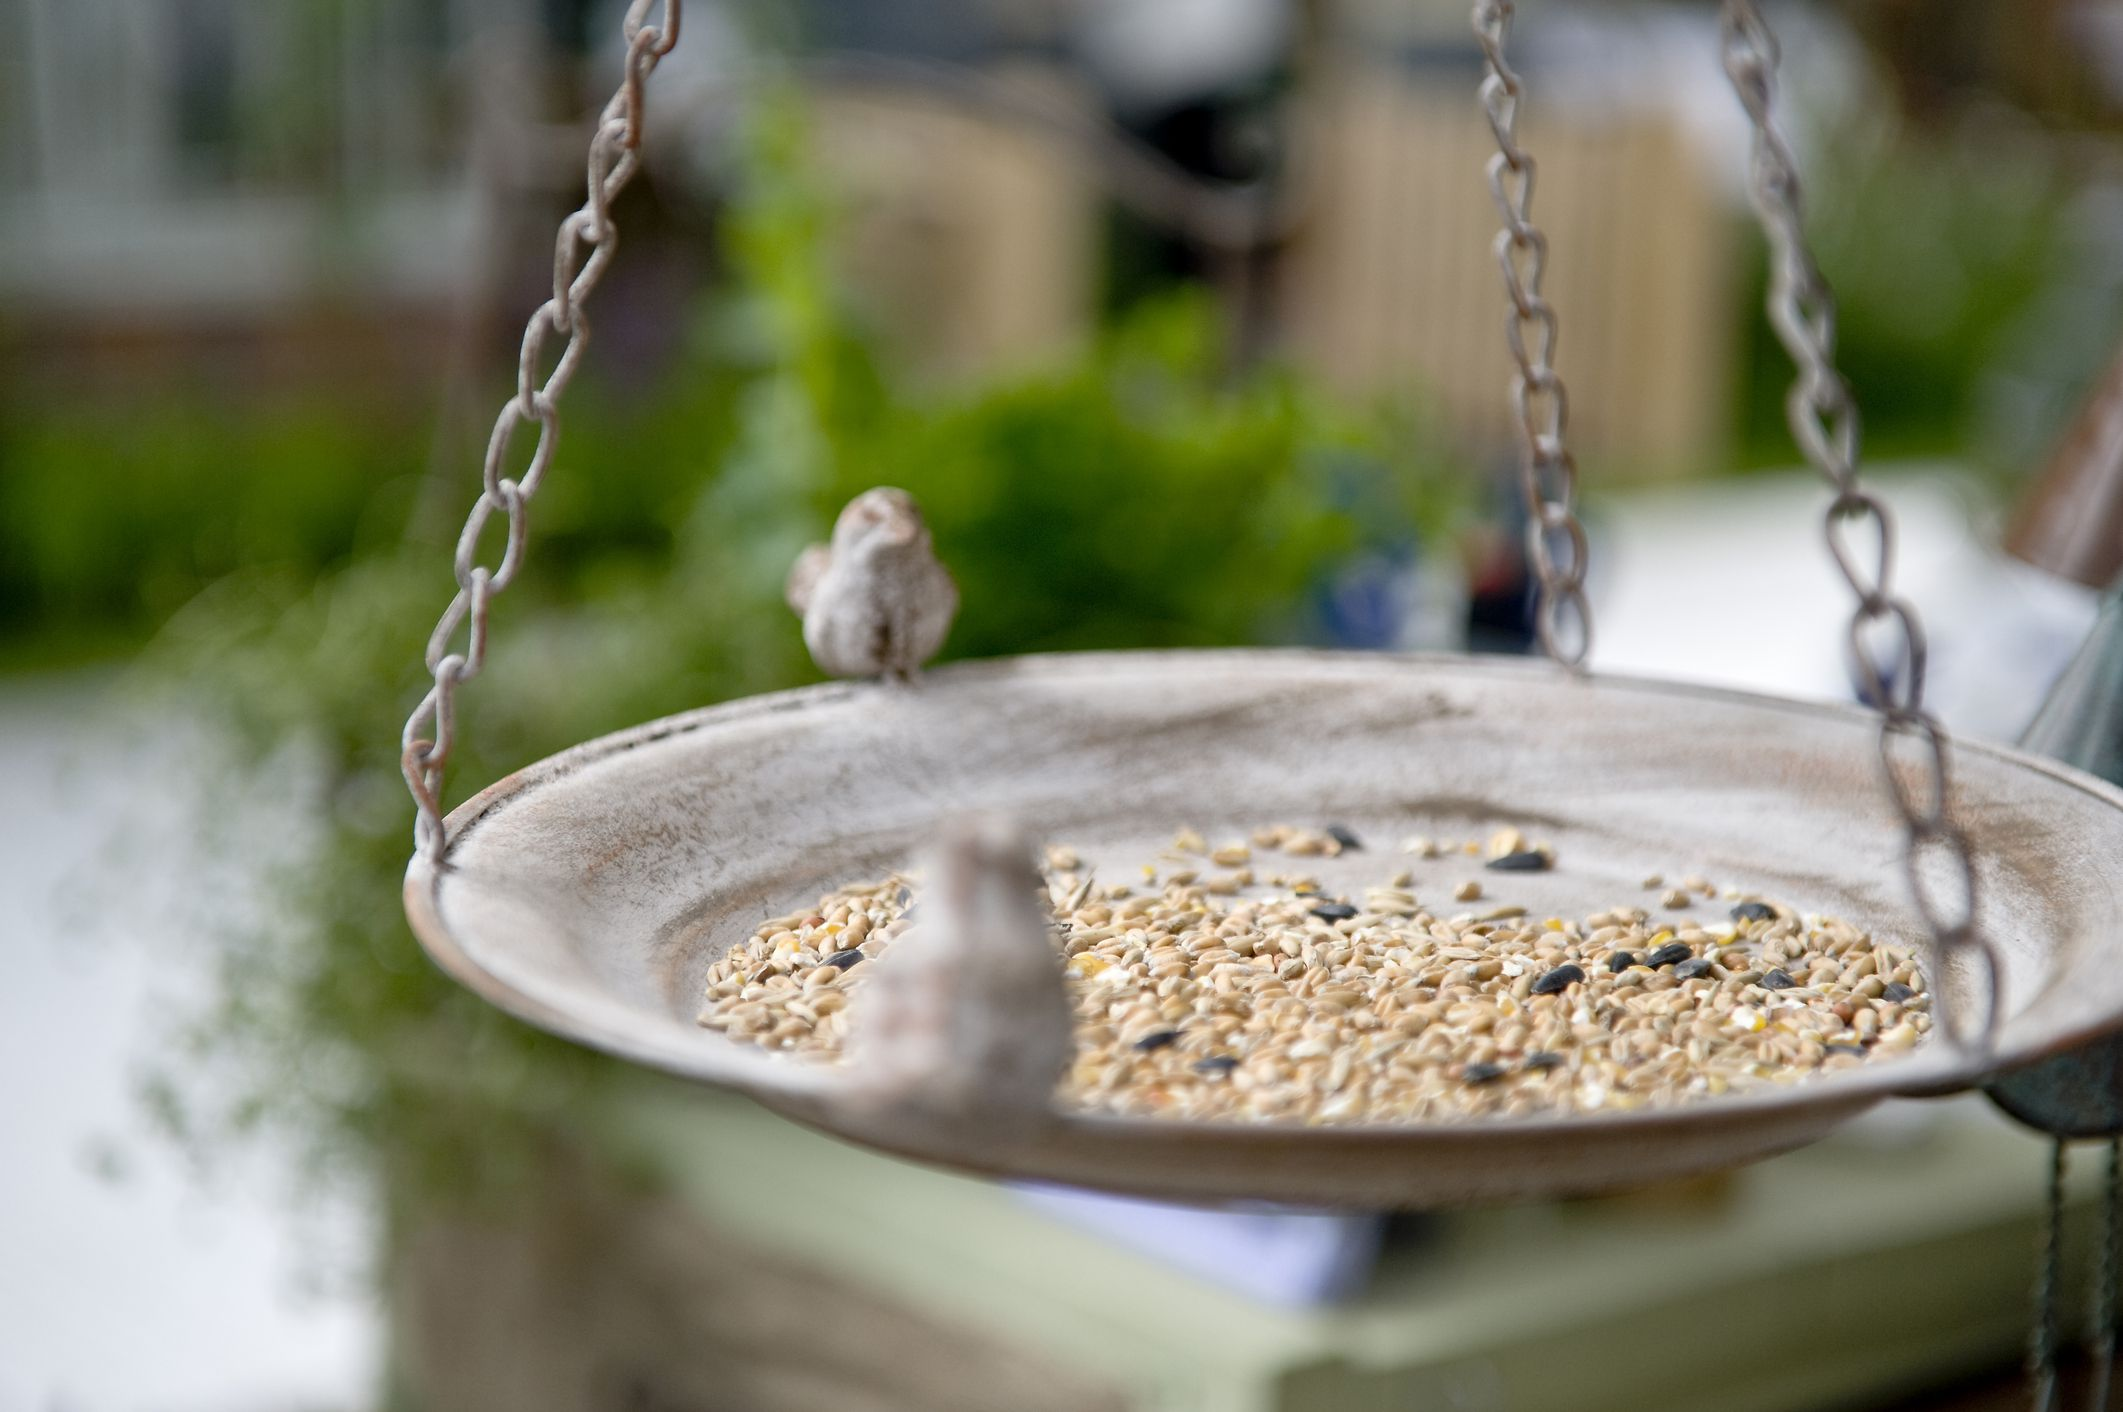 safflower seeds and the birds that eat them